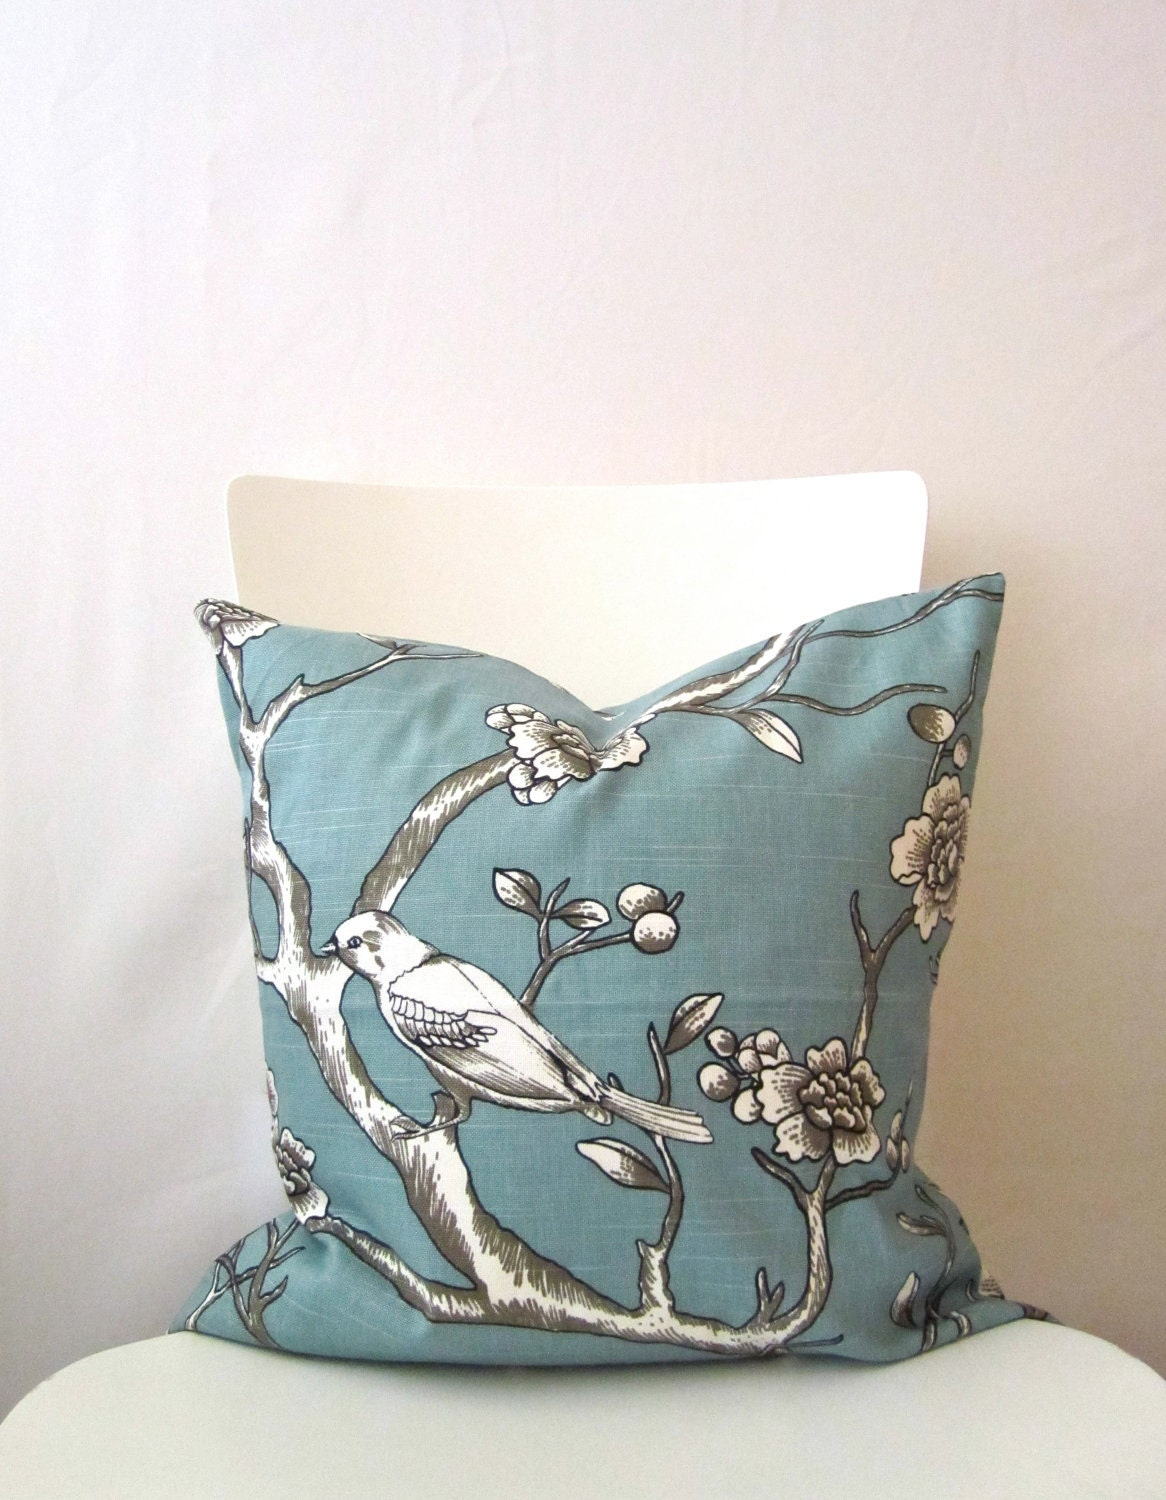 Bird Themed Throw Pillows : Items similar to 18 inch throw pillow cover, Dwell birds and branches, blue color. Nature trees ...